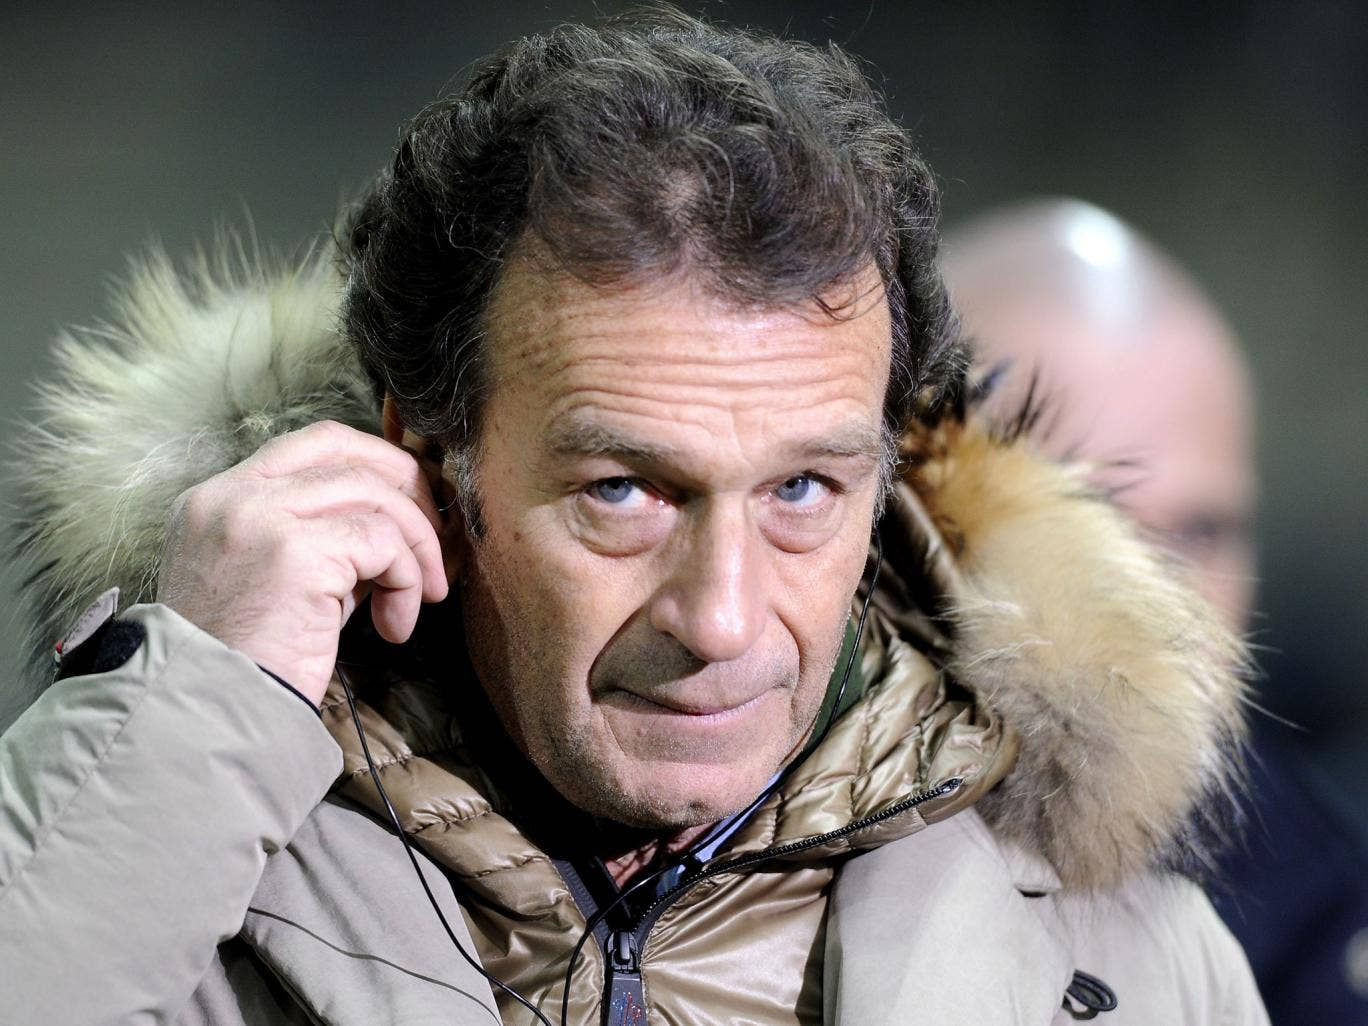 Cagliari President Massimo Cellino has been arrested as part of an investigation into the Is Arenas stadium where the Serie A club has been staging their home matches this season